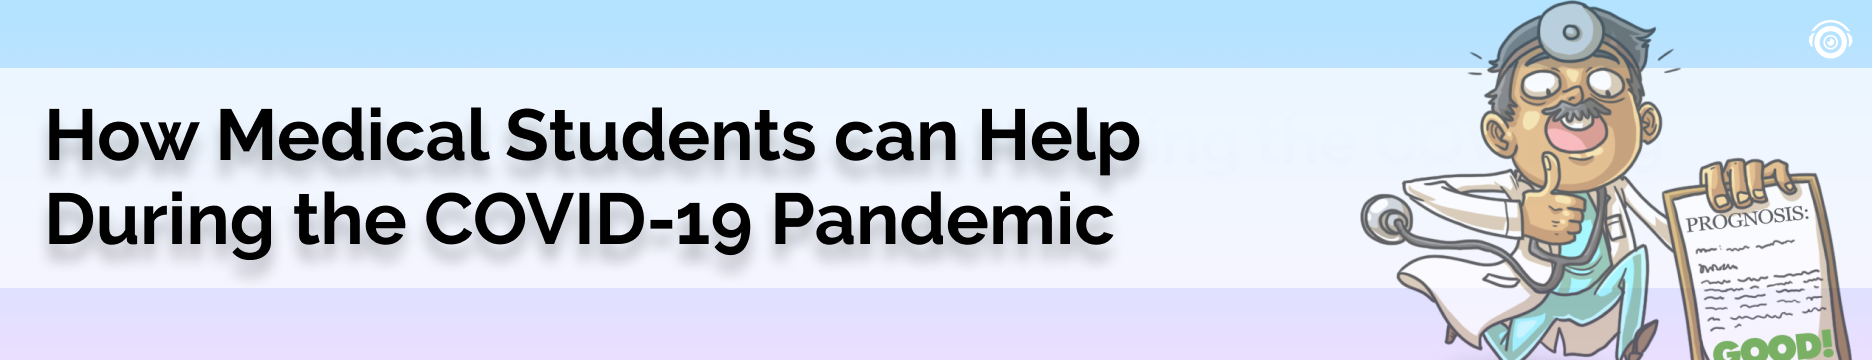 How Medical Students can Help During the COVID-19 Pandemic